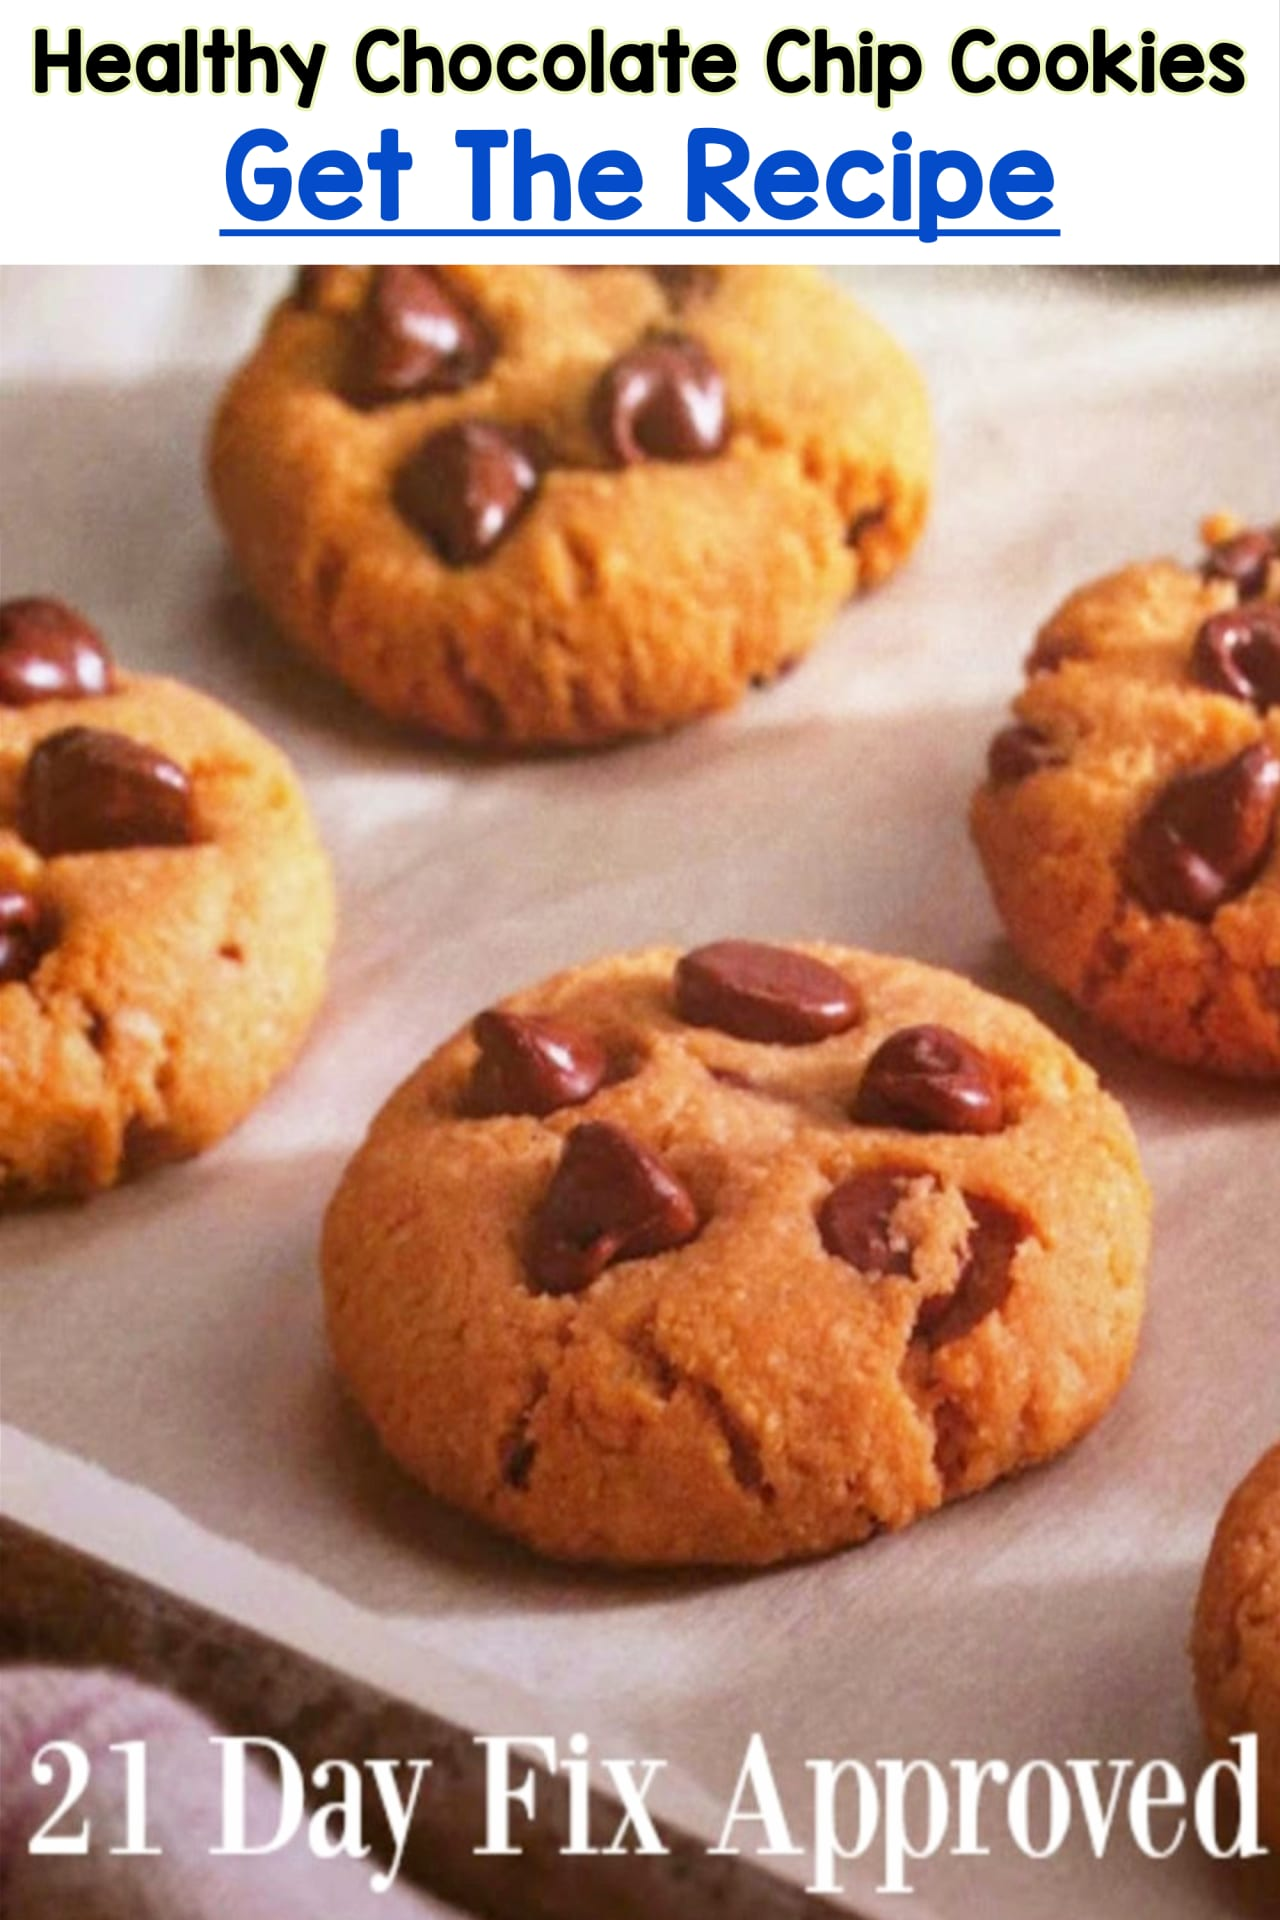 Healthy chocolate cookies recipes - YES, you CAN eat these diet cookies when trying to lose weight loss... they're even 21 Day Fix approved! Get this healthy cookie dessert recipe here